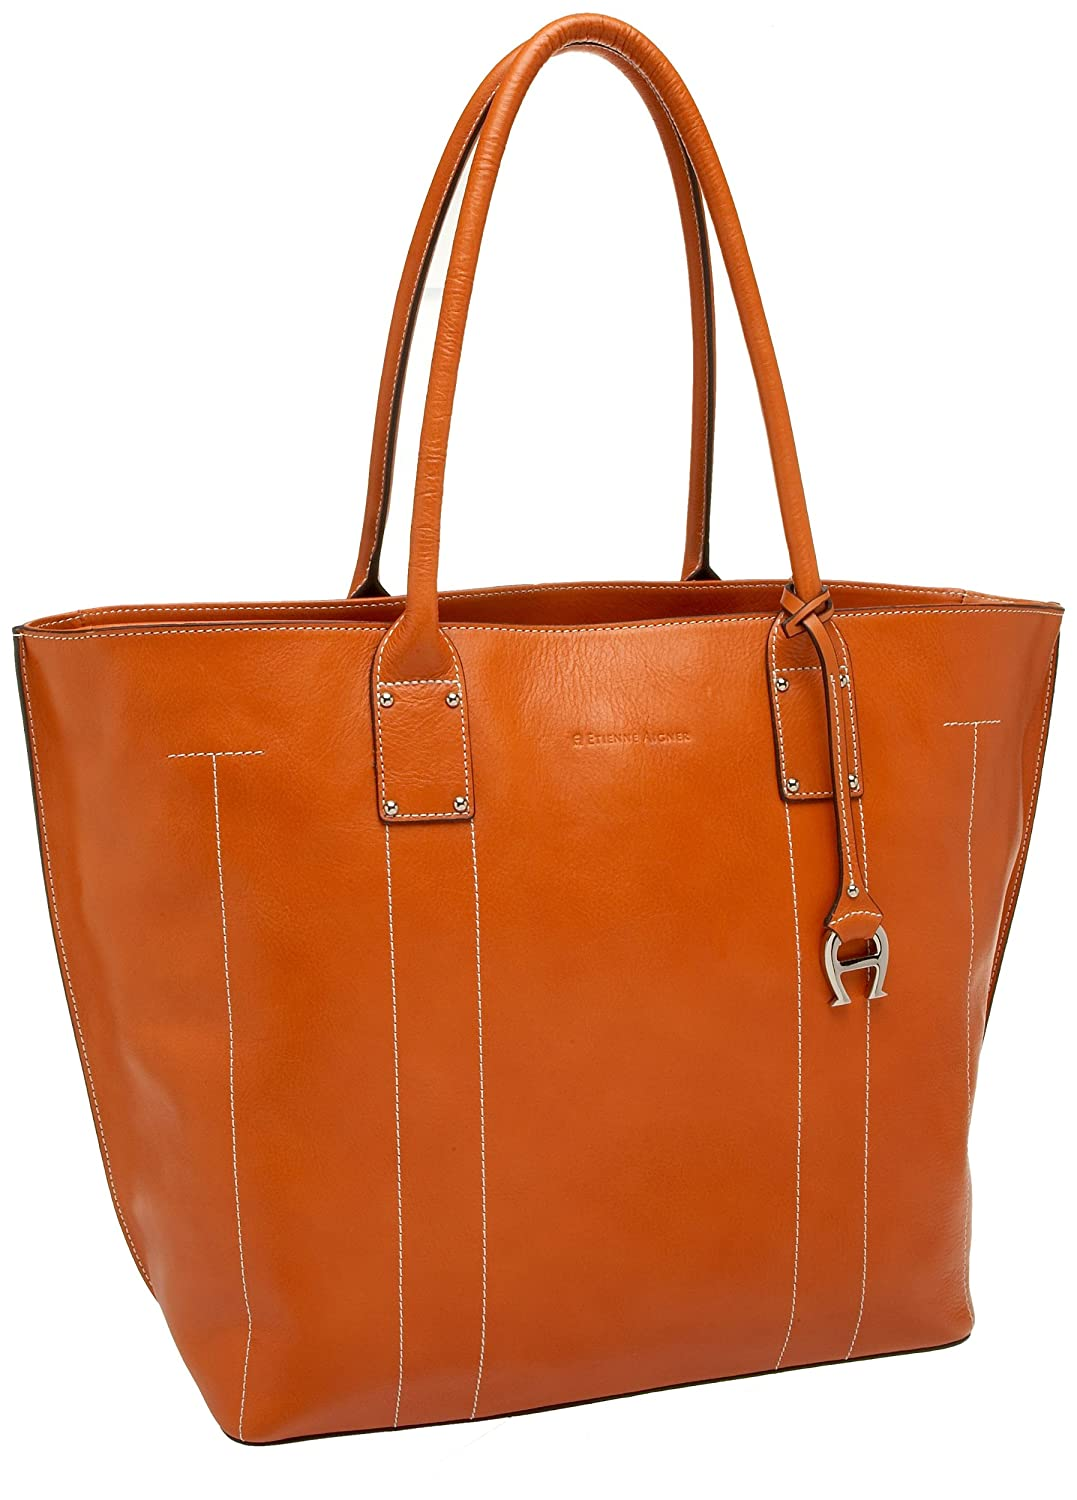 Etienne Aigner Modern Tote - Free Overnight Shipping & Return Shipping: Endless.com from endless.com